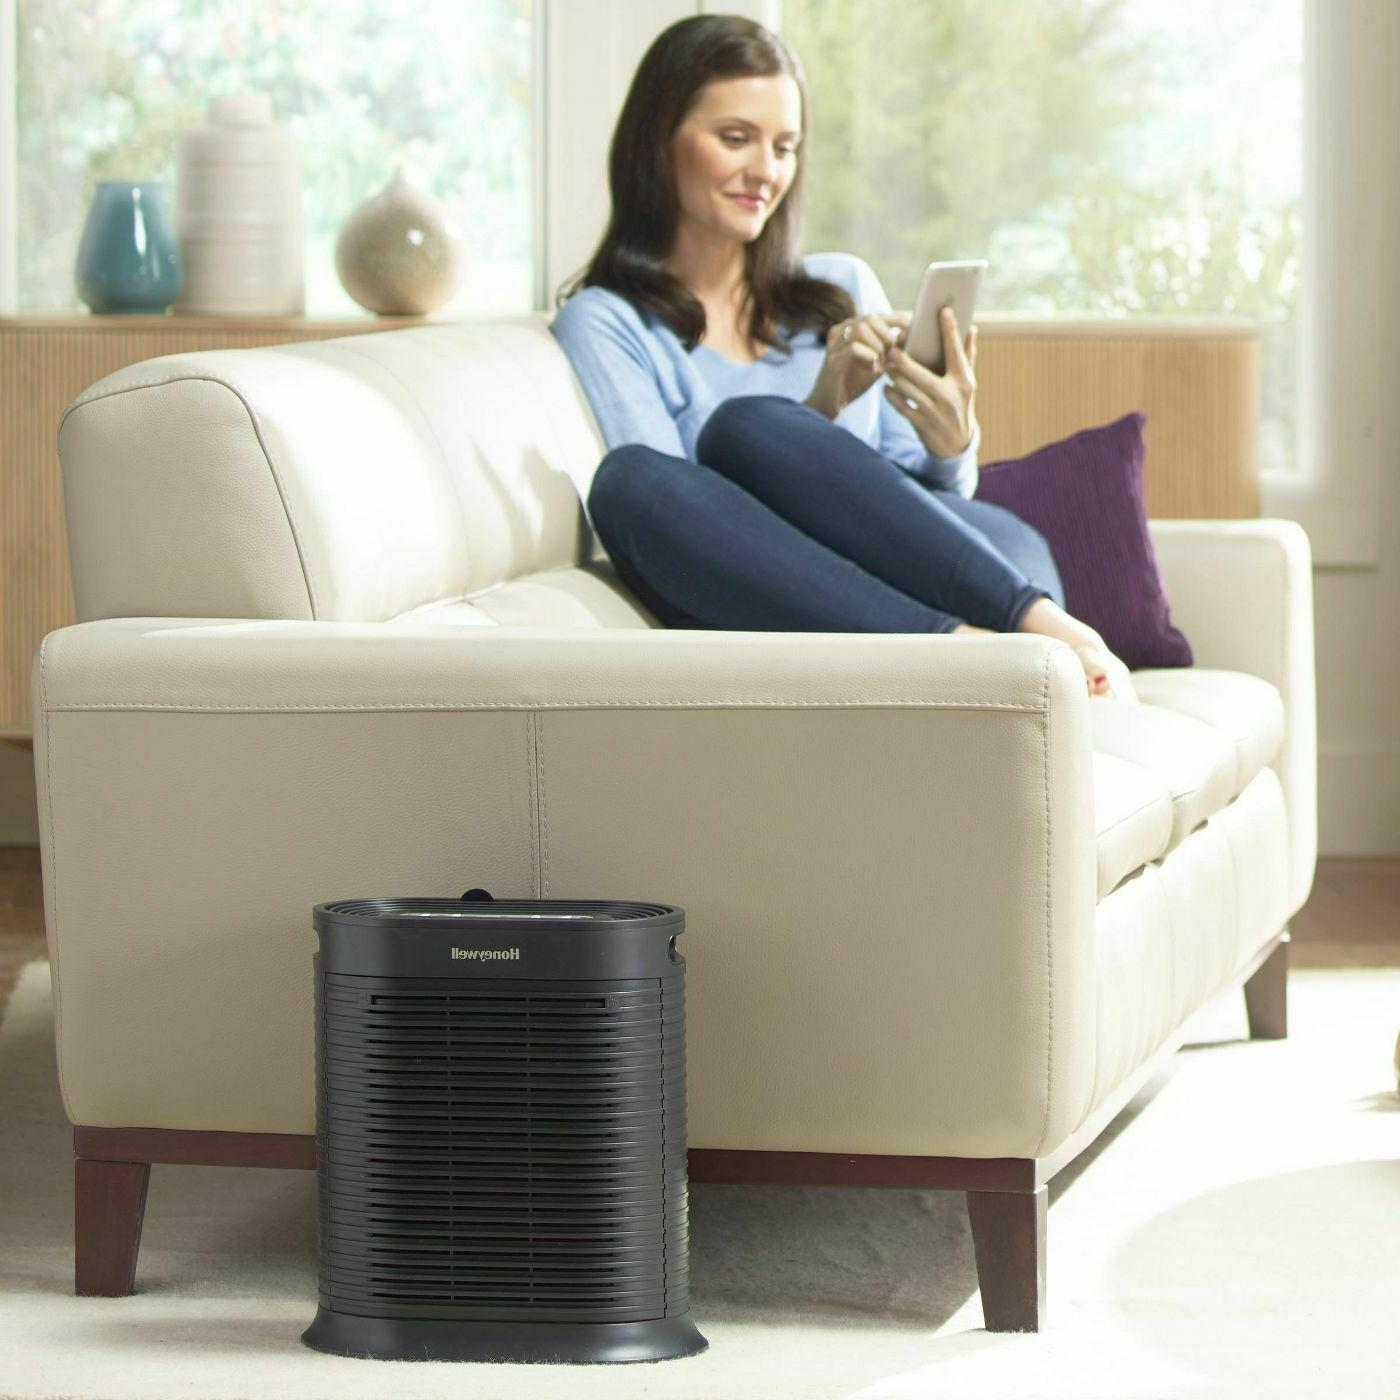 hpa100 true hepa allergen remover air purifier